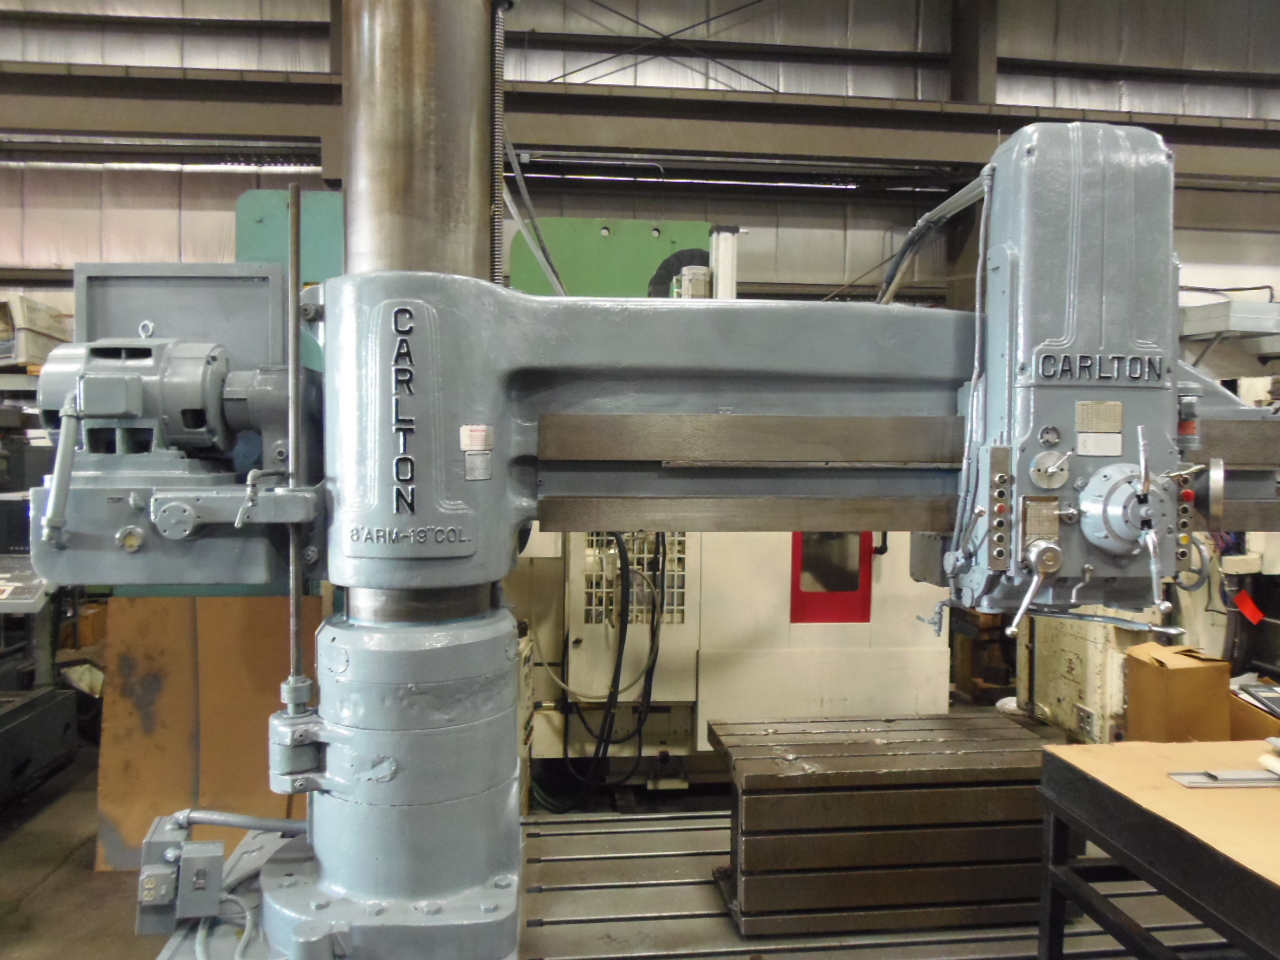 "8' X 19"" CARLTON 4A RADIAL ARM DRILL, 50HP MOTOR, BOX TABLE, 1979"